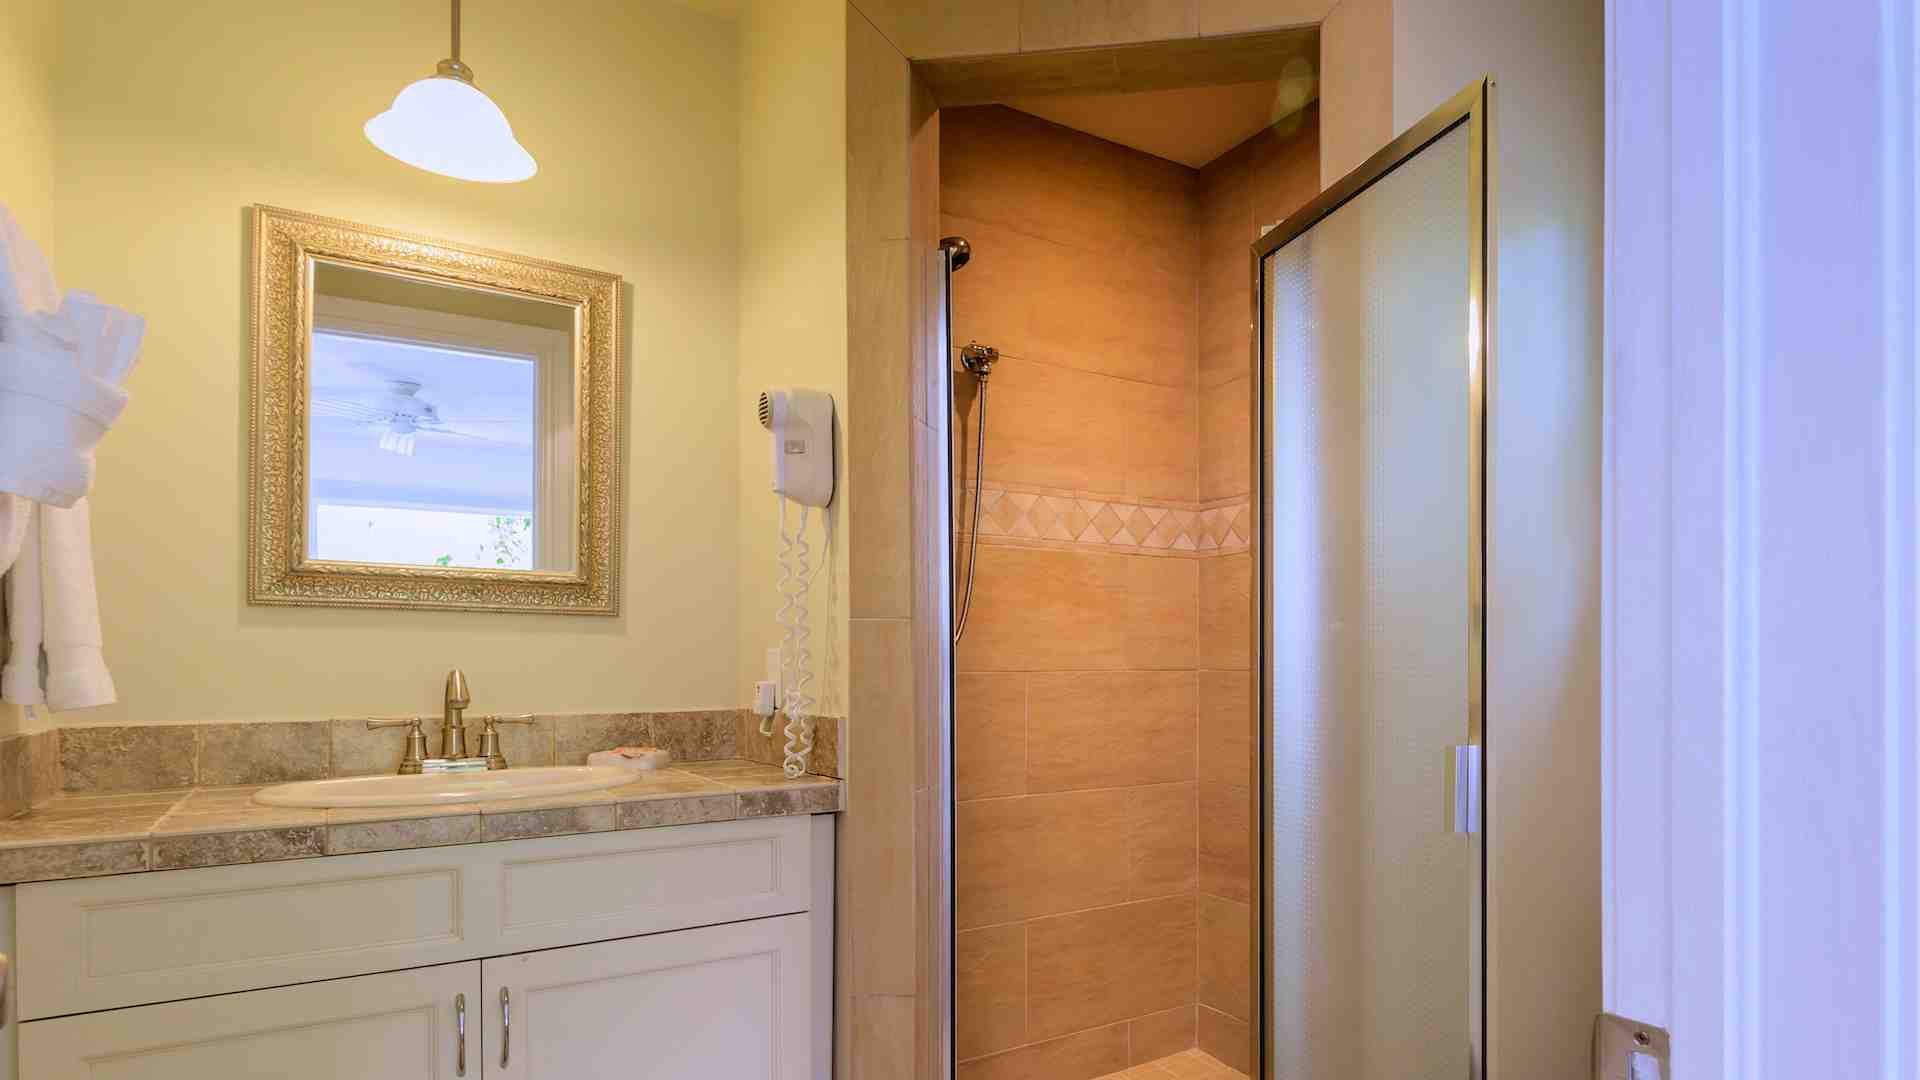 This bathroom is directly off the second bedroom with a glass shower...